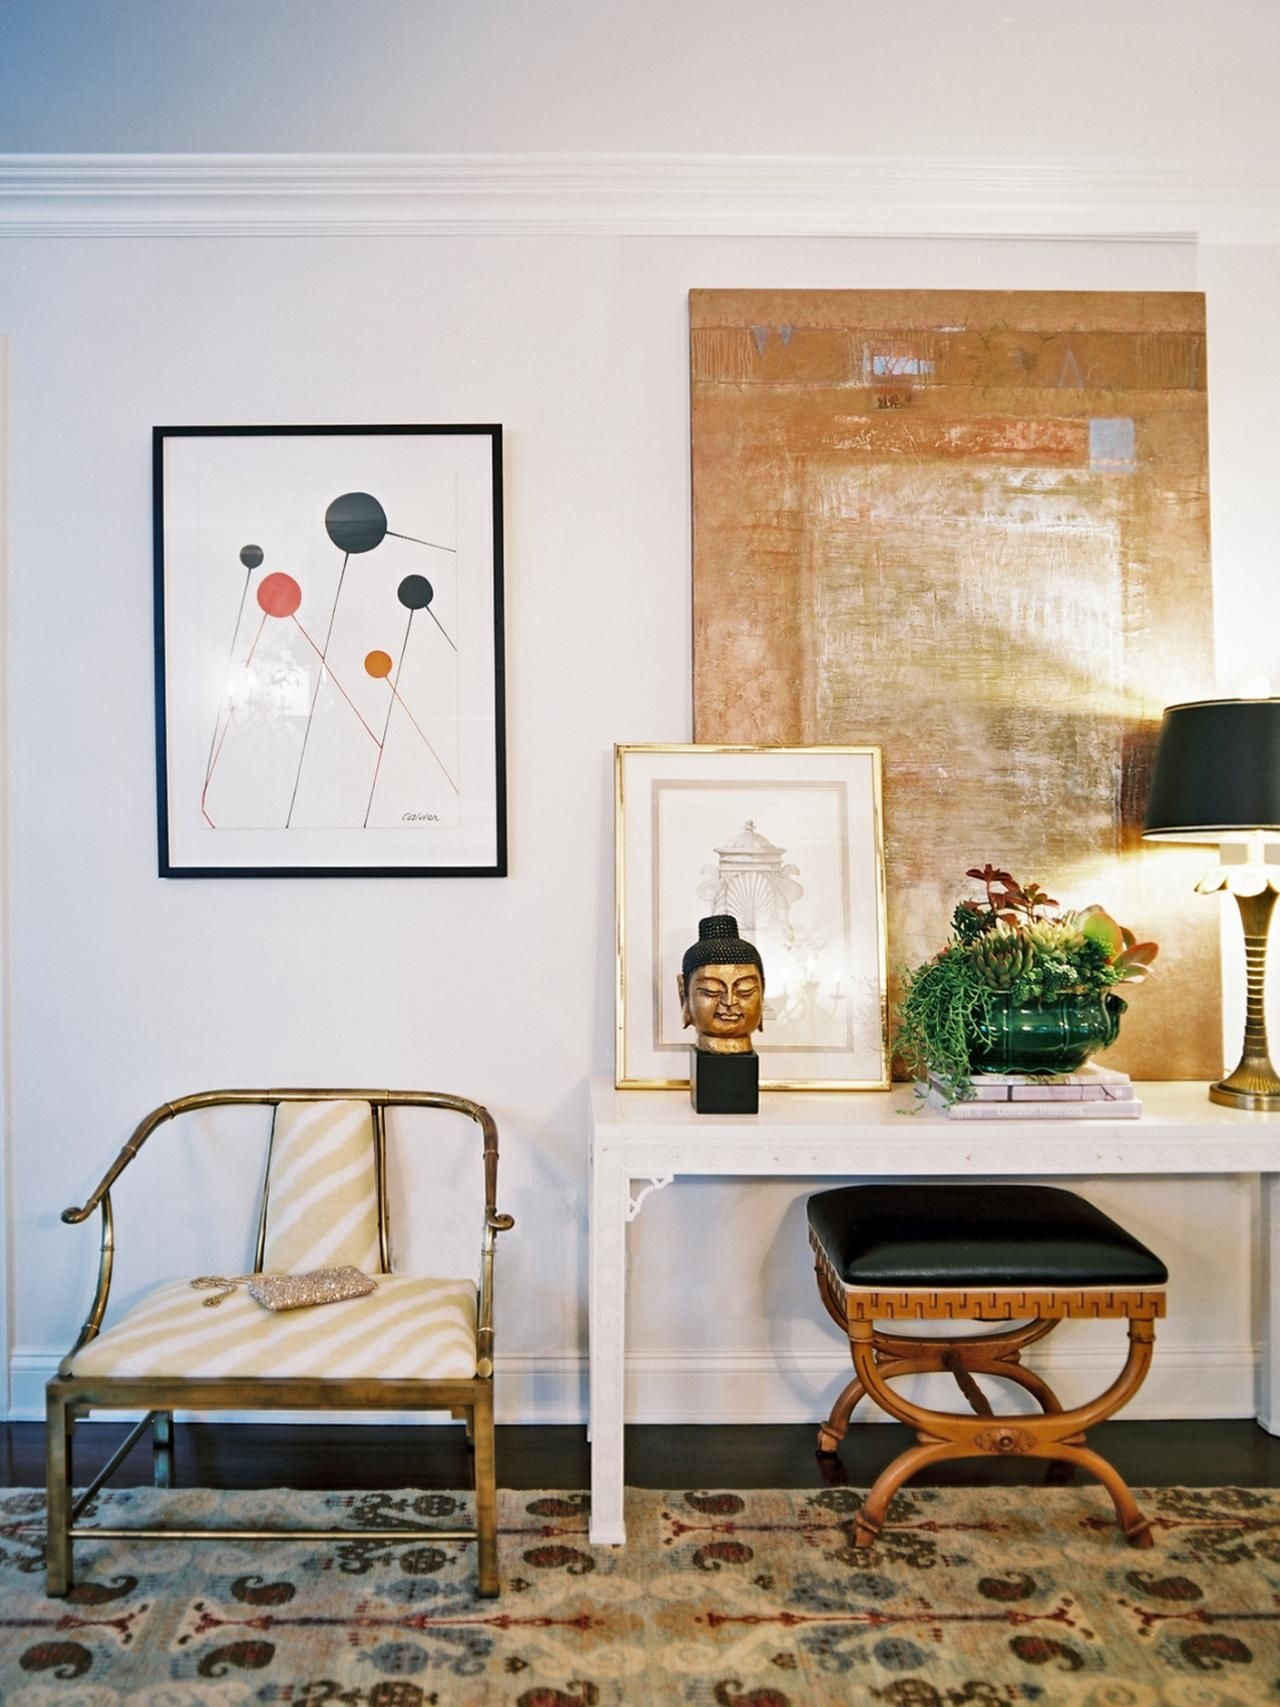 Color of art gallery walls - How To Create An Art Gallery Wall Interior Design Styles And Color Schemes For Home